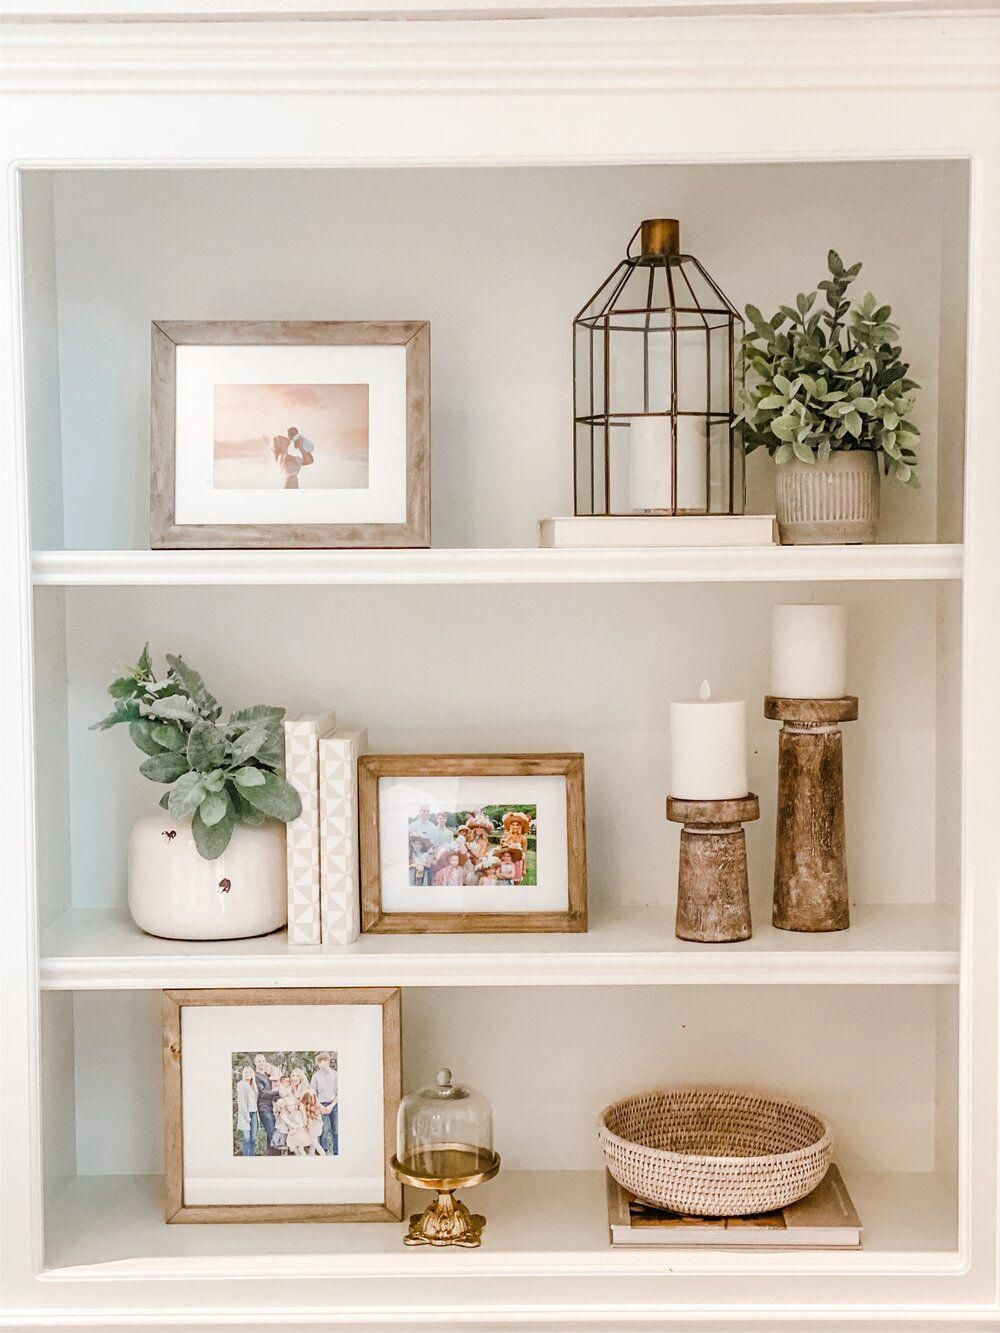 One Of The Most Common Areas That People Struggle With Is Bookcase Or Shelf Styling There Are Often Ma Shelf Decor Living Room Bookcase Decor Bookcase Styling Living room knick knacks